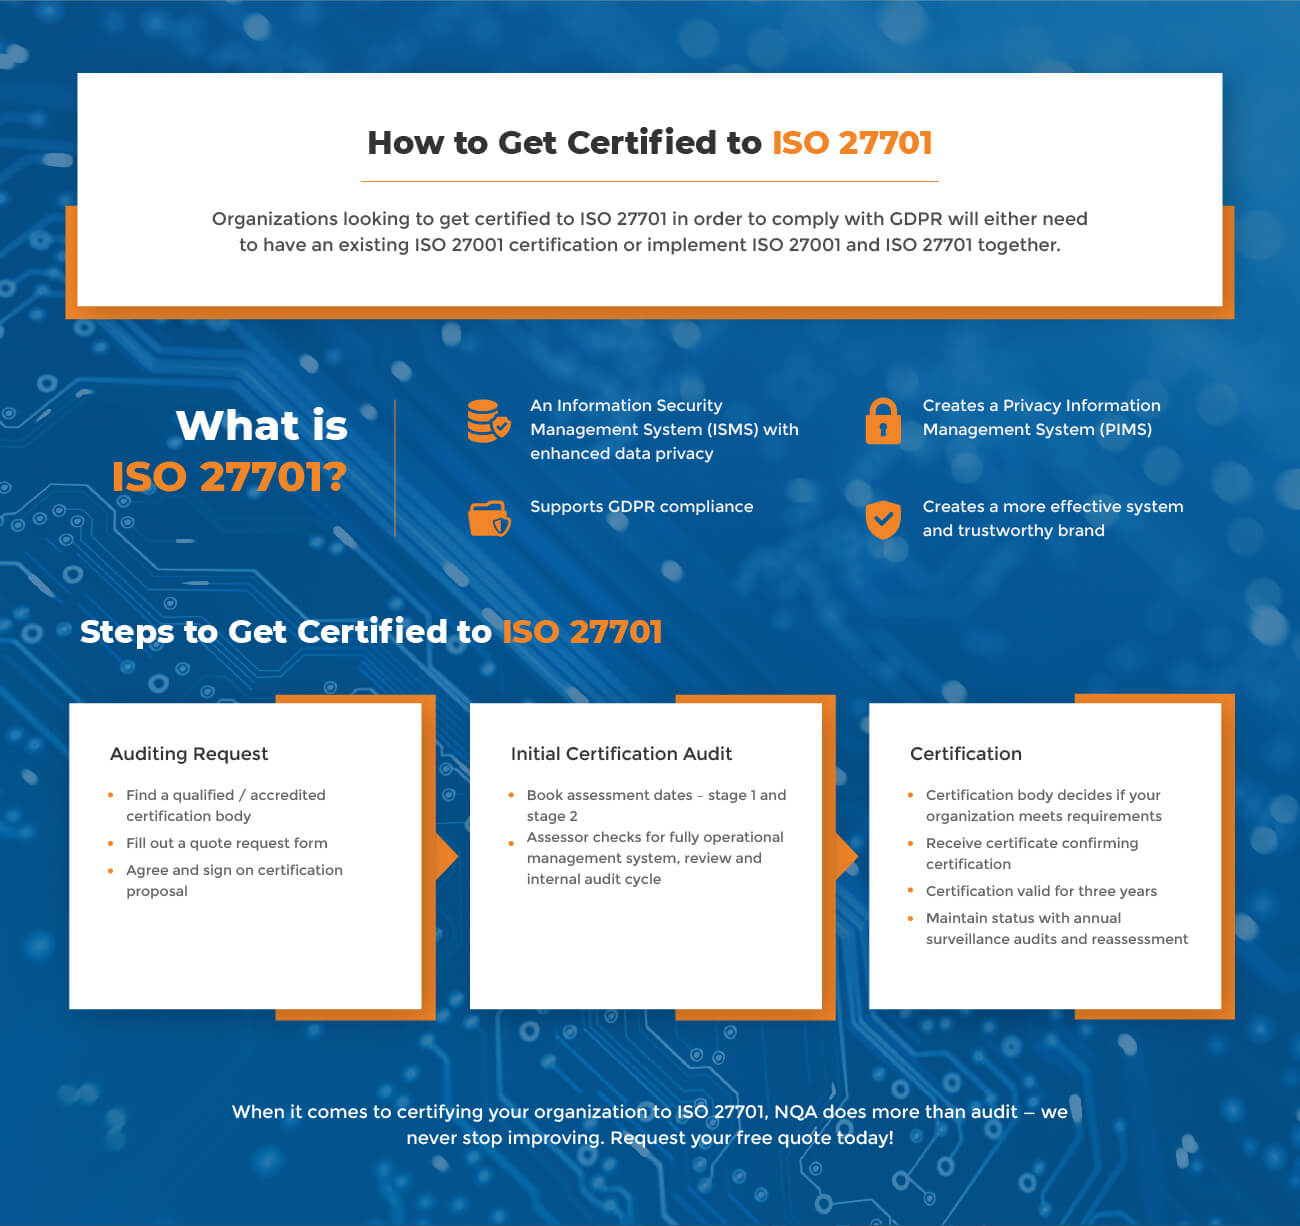 how to get certified to iso 27701